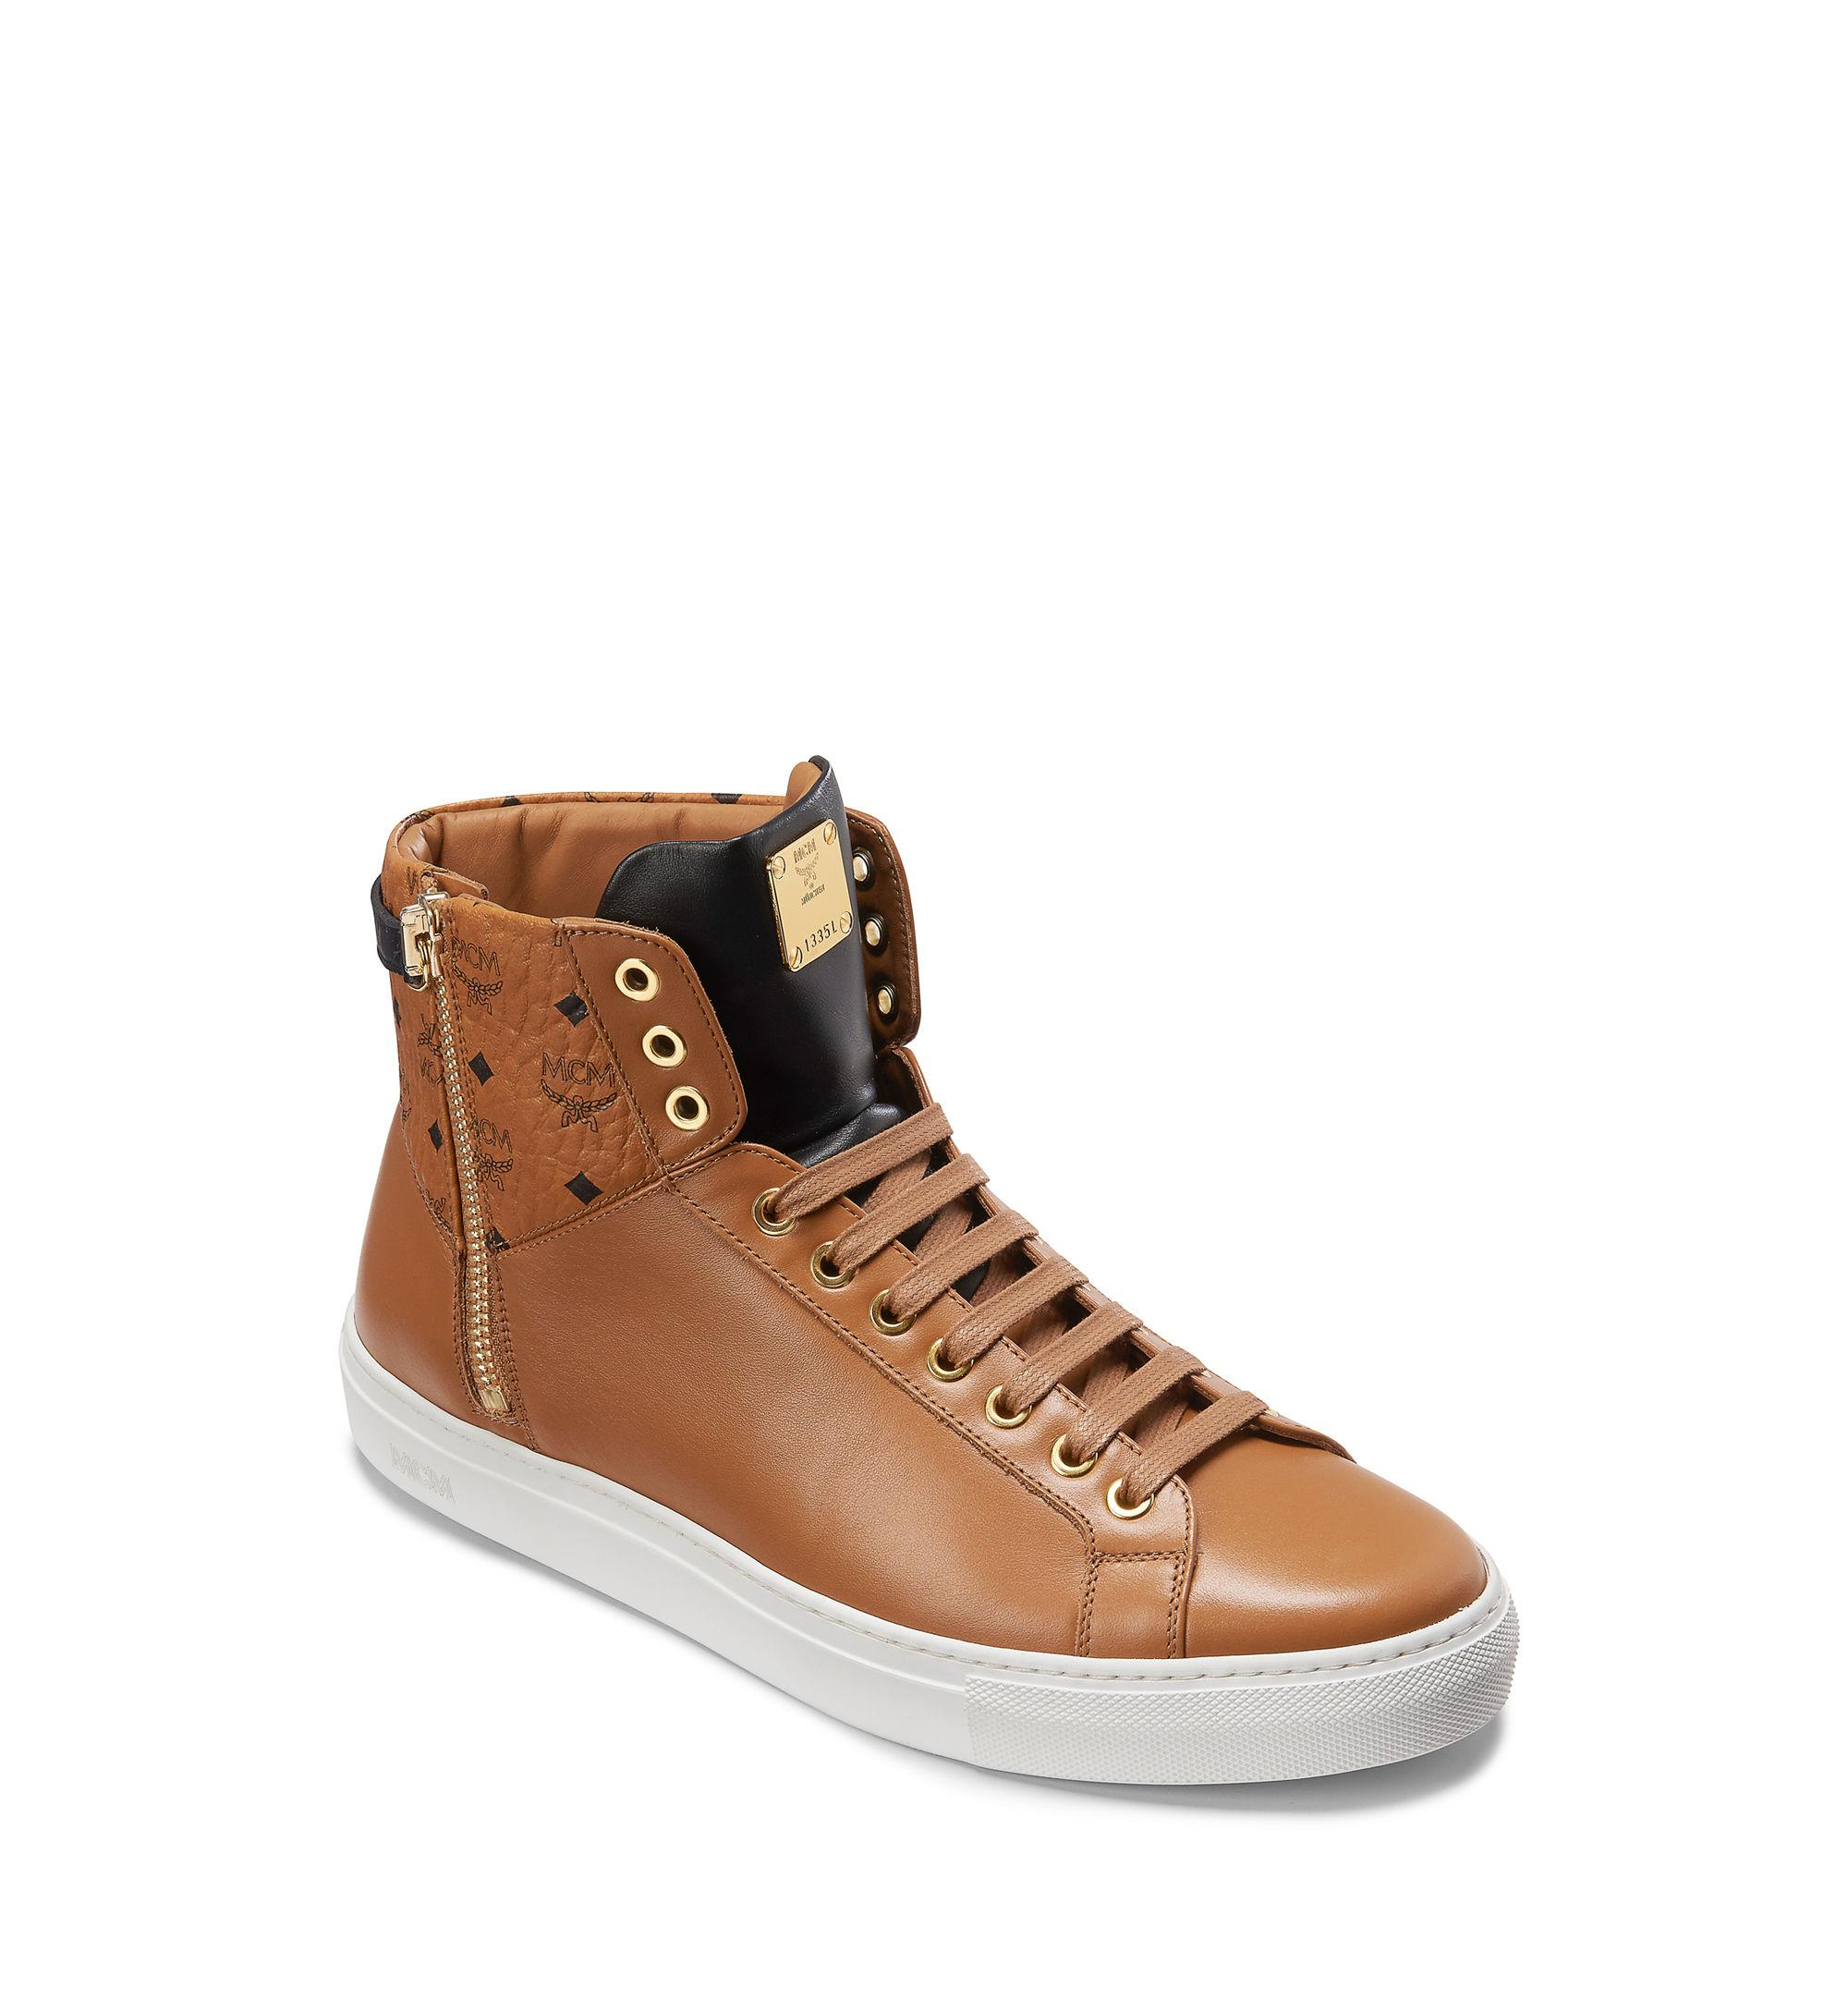 a40f412a964 Lyst - MCM High Top Classic Zip Sneakers In Leather in Brown